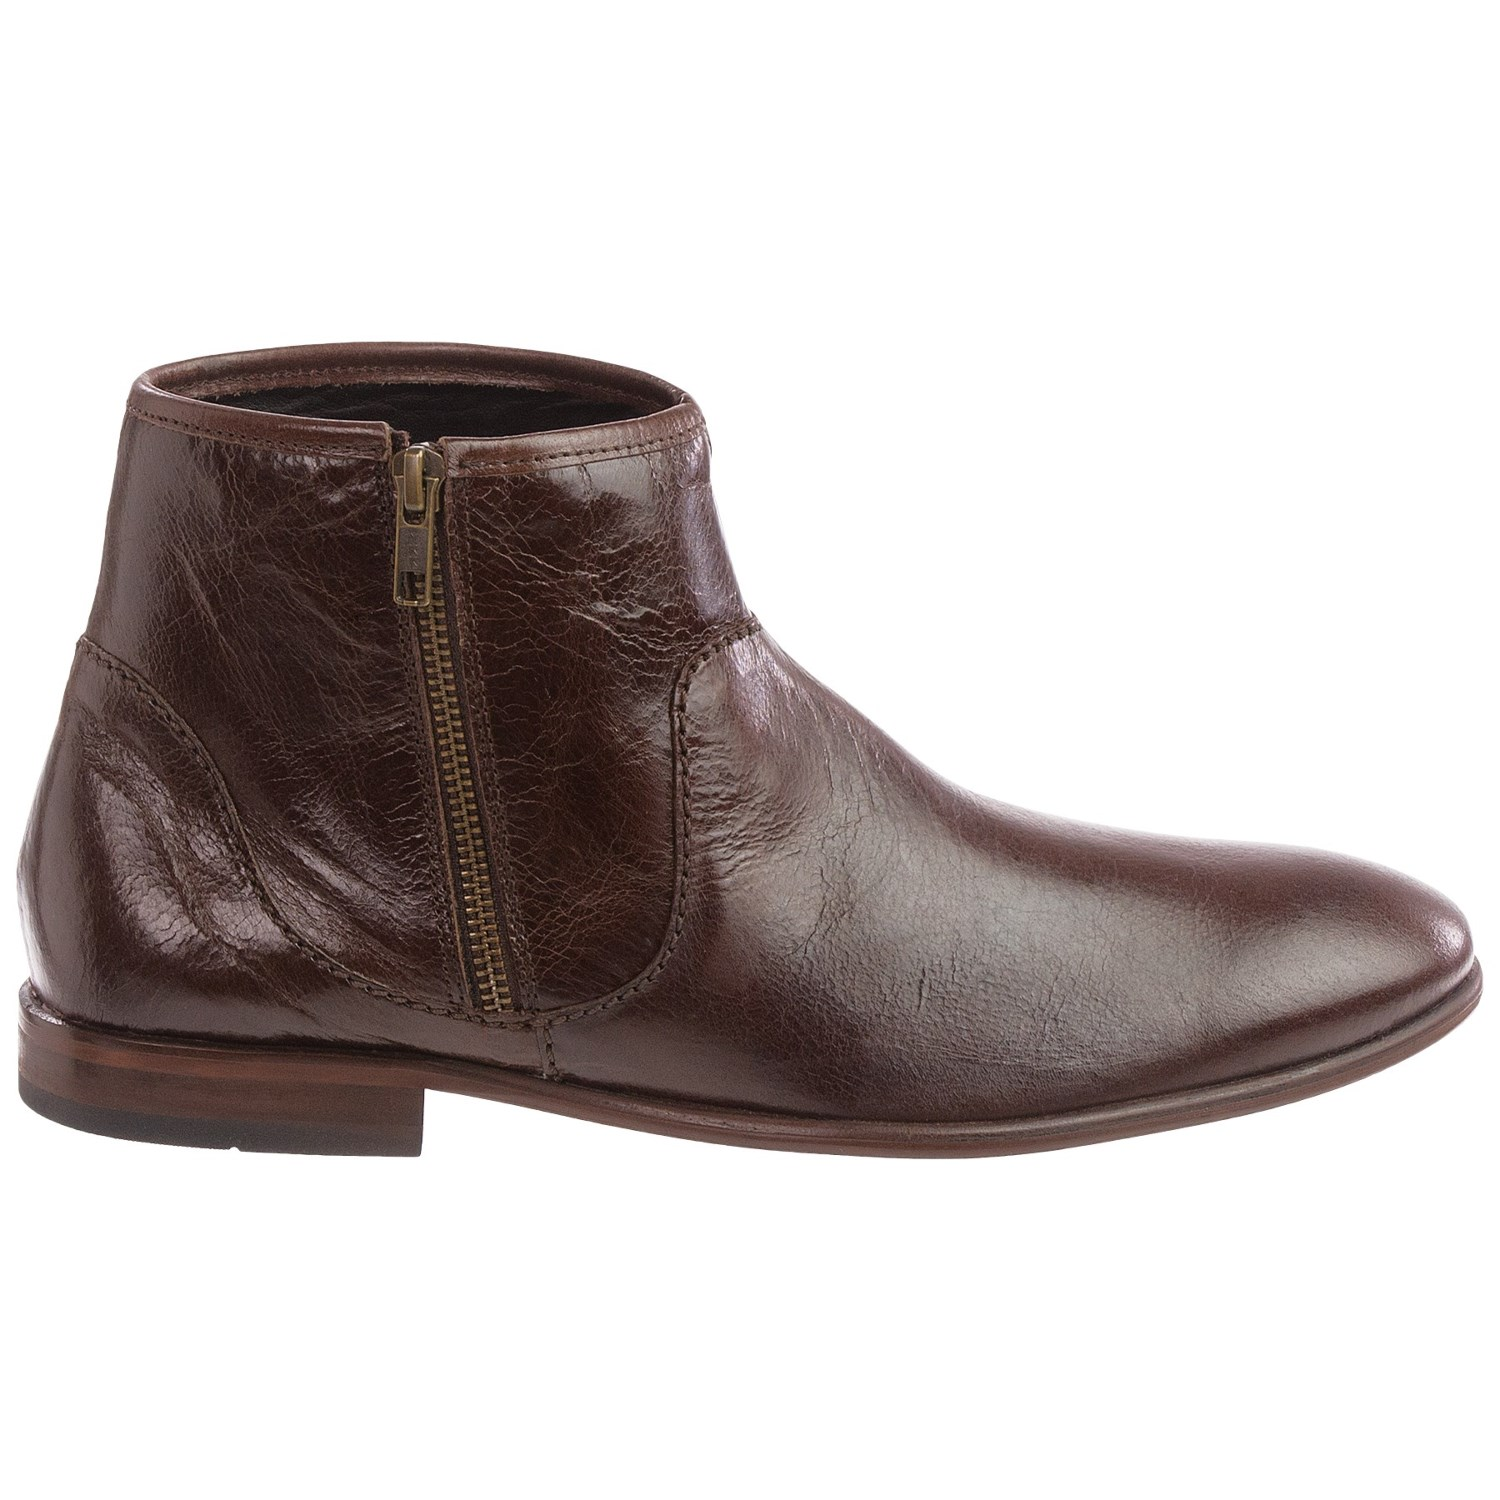 Ankle Boots For Men aJPfCWLa